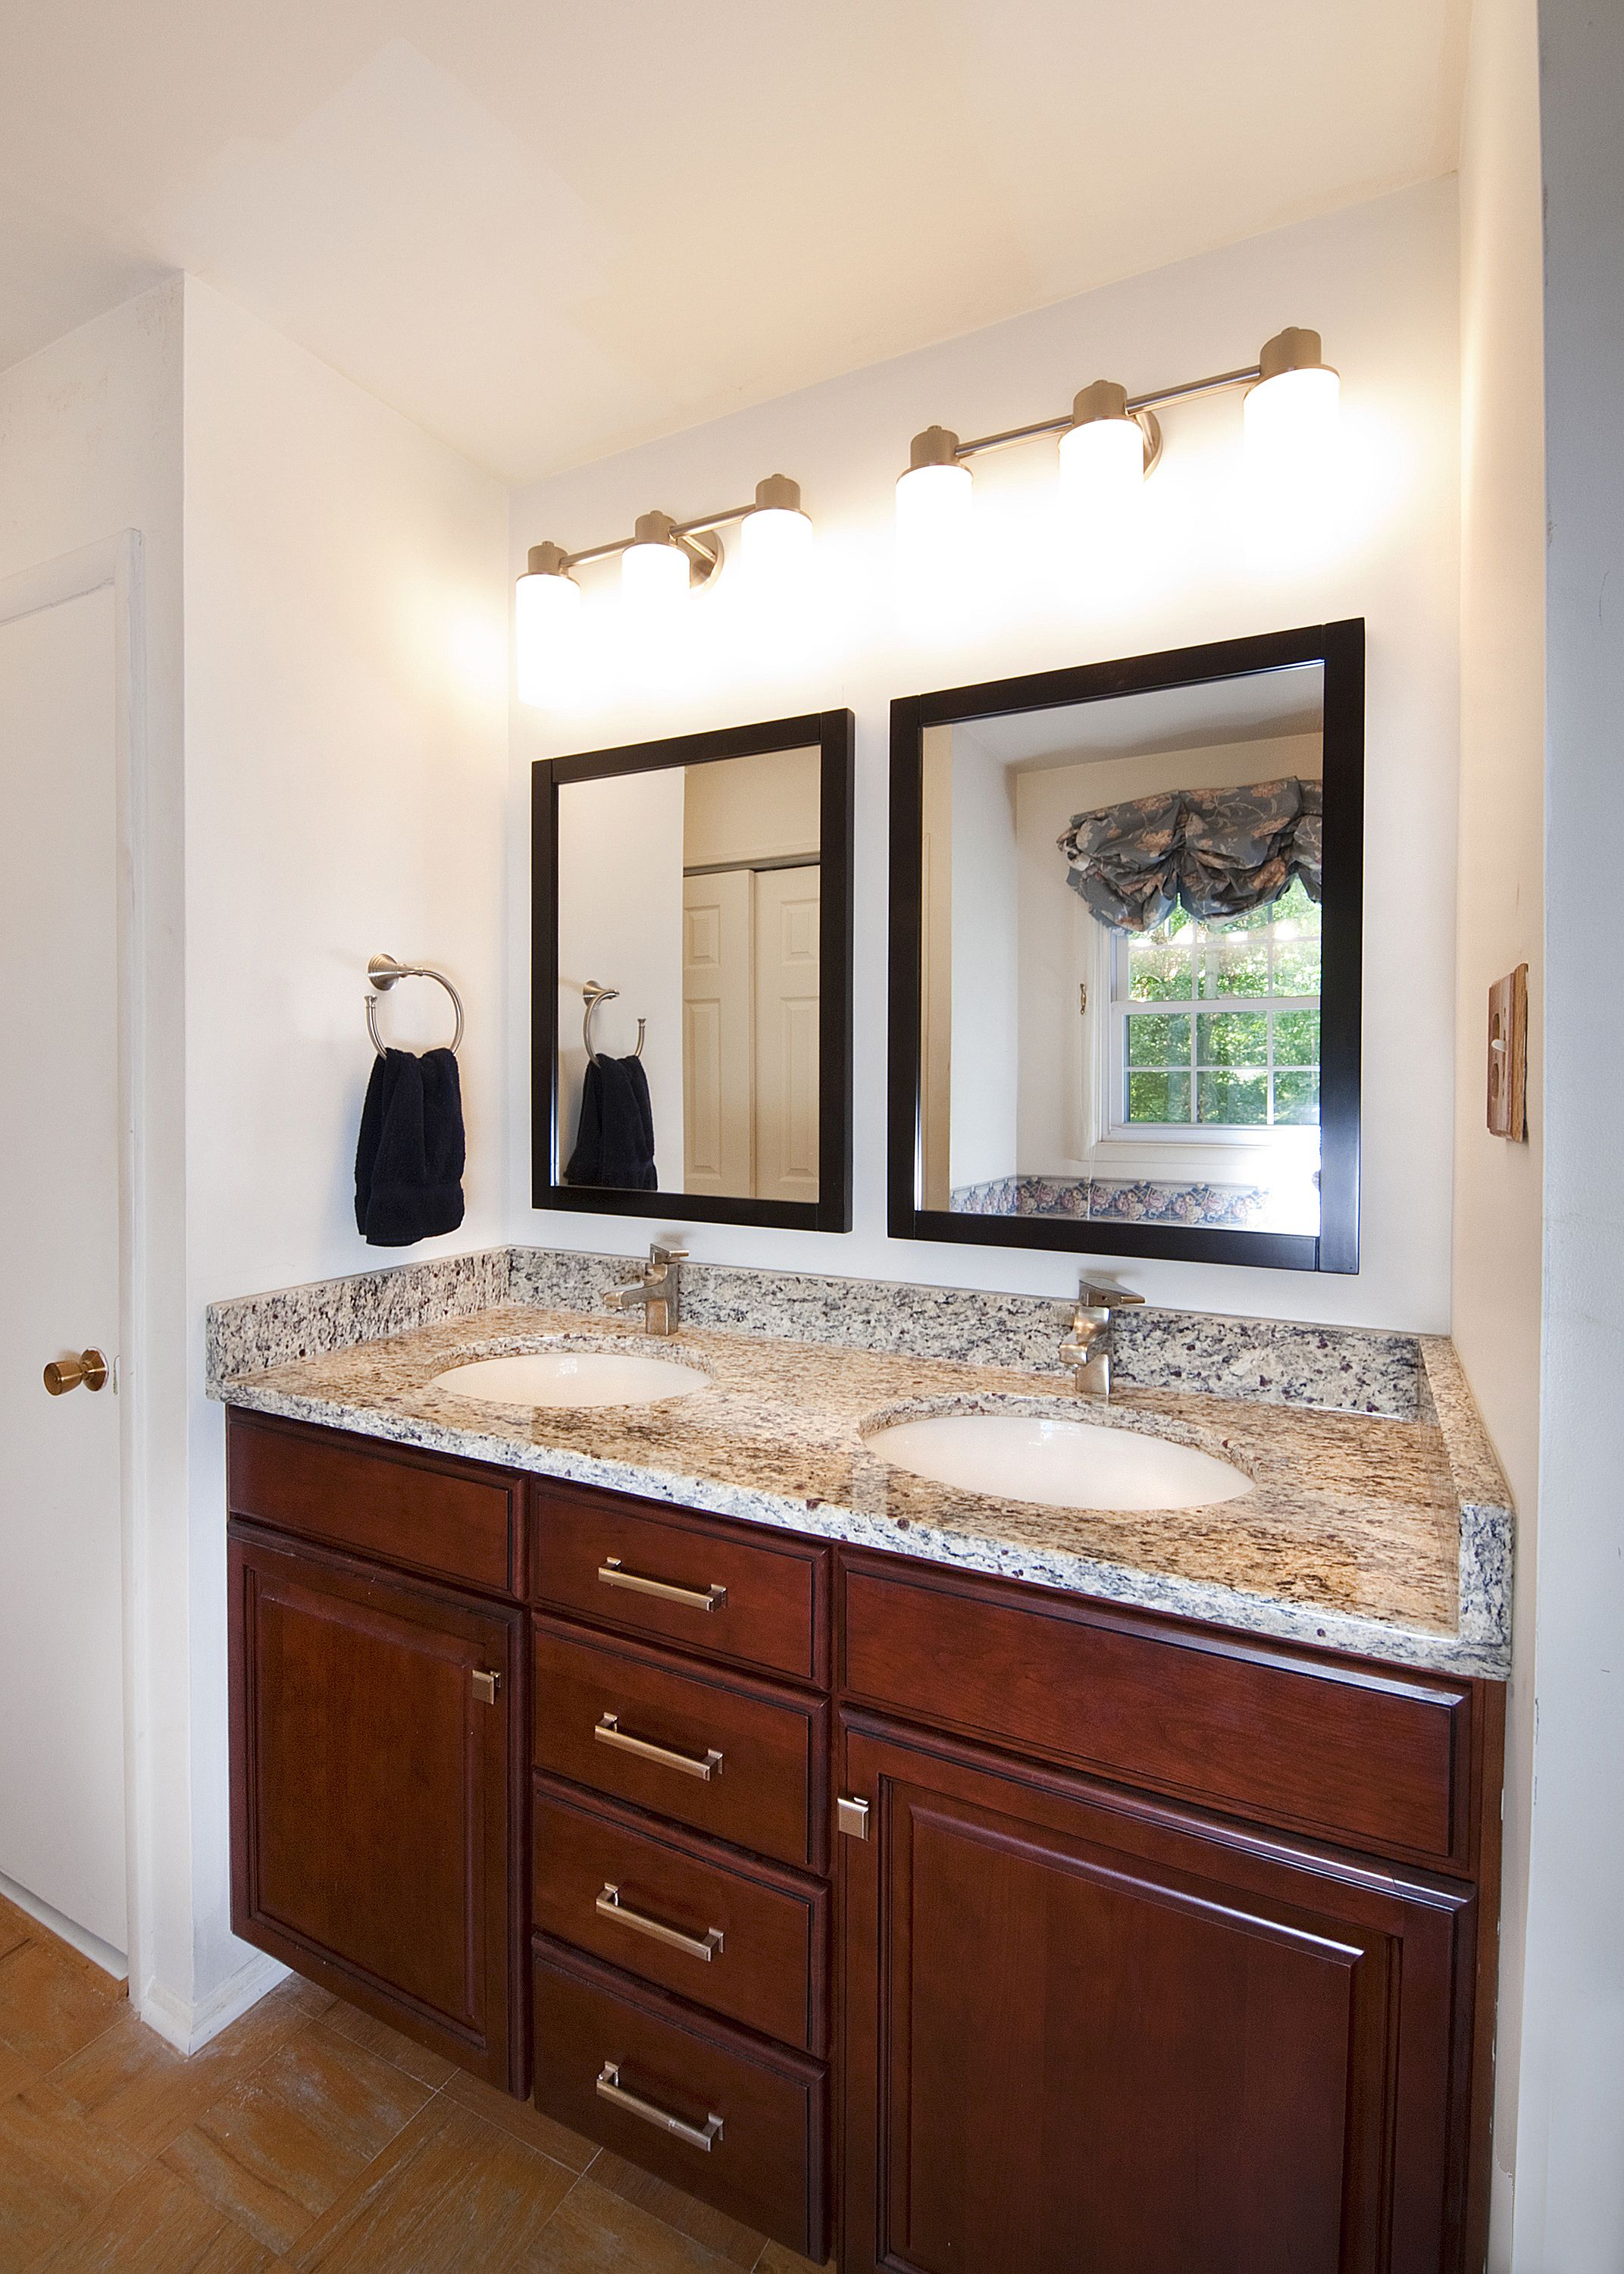 Joppatown Md Vanity By Bel Air Construction Kitchen And Bath Remodeling Bath Remodel Remodel